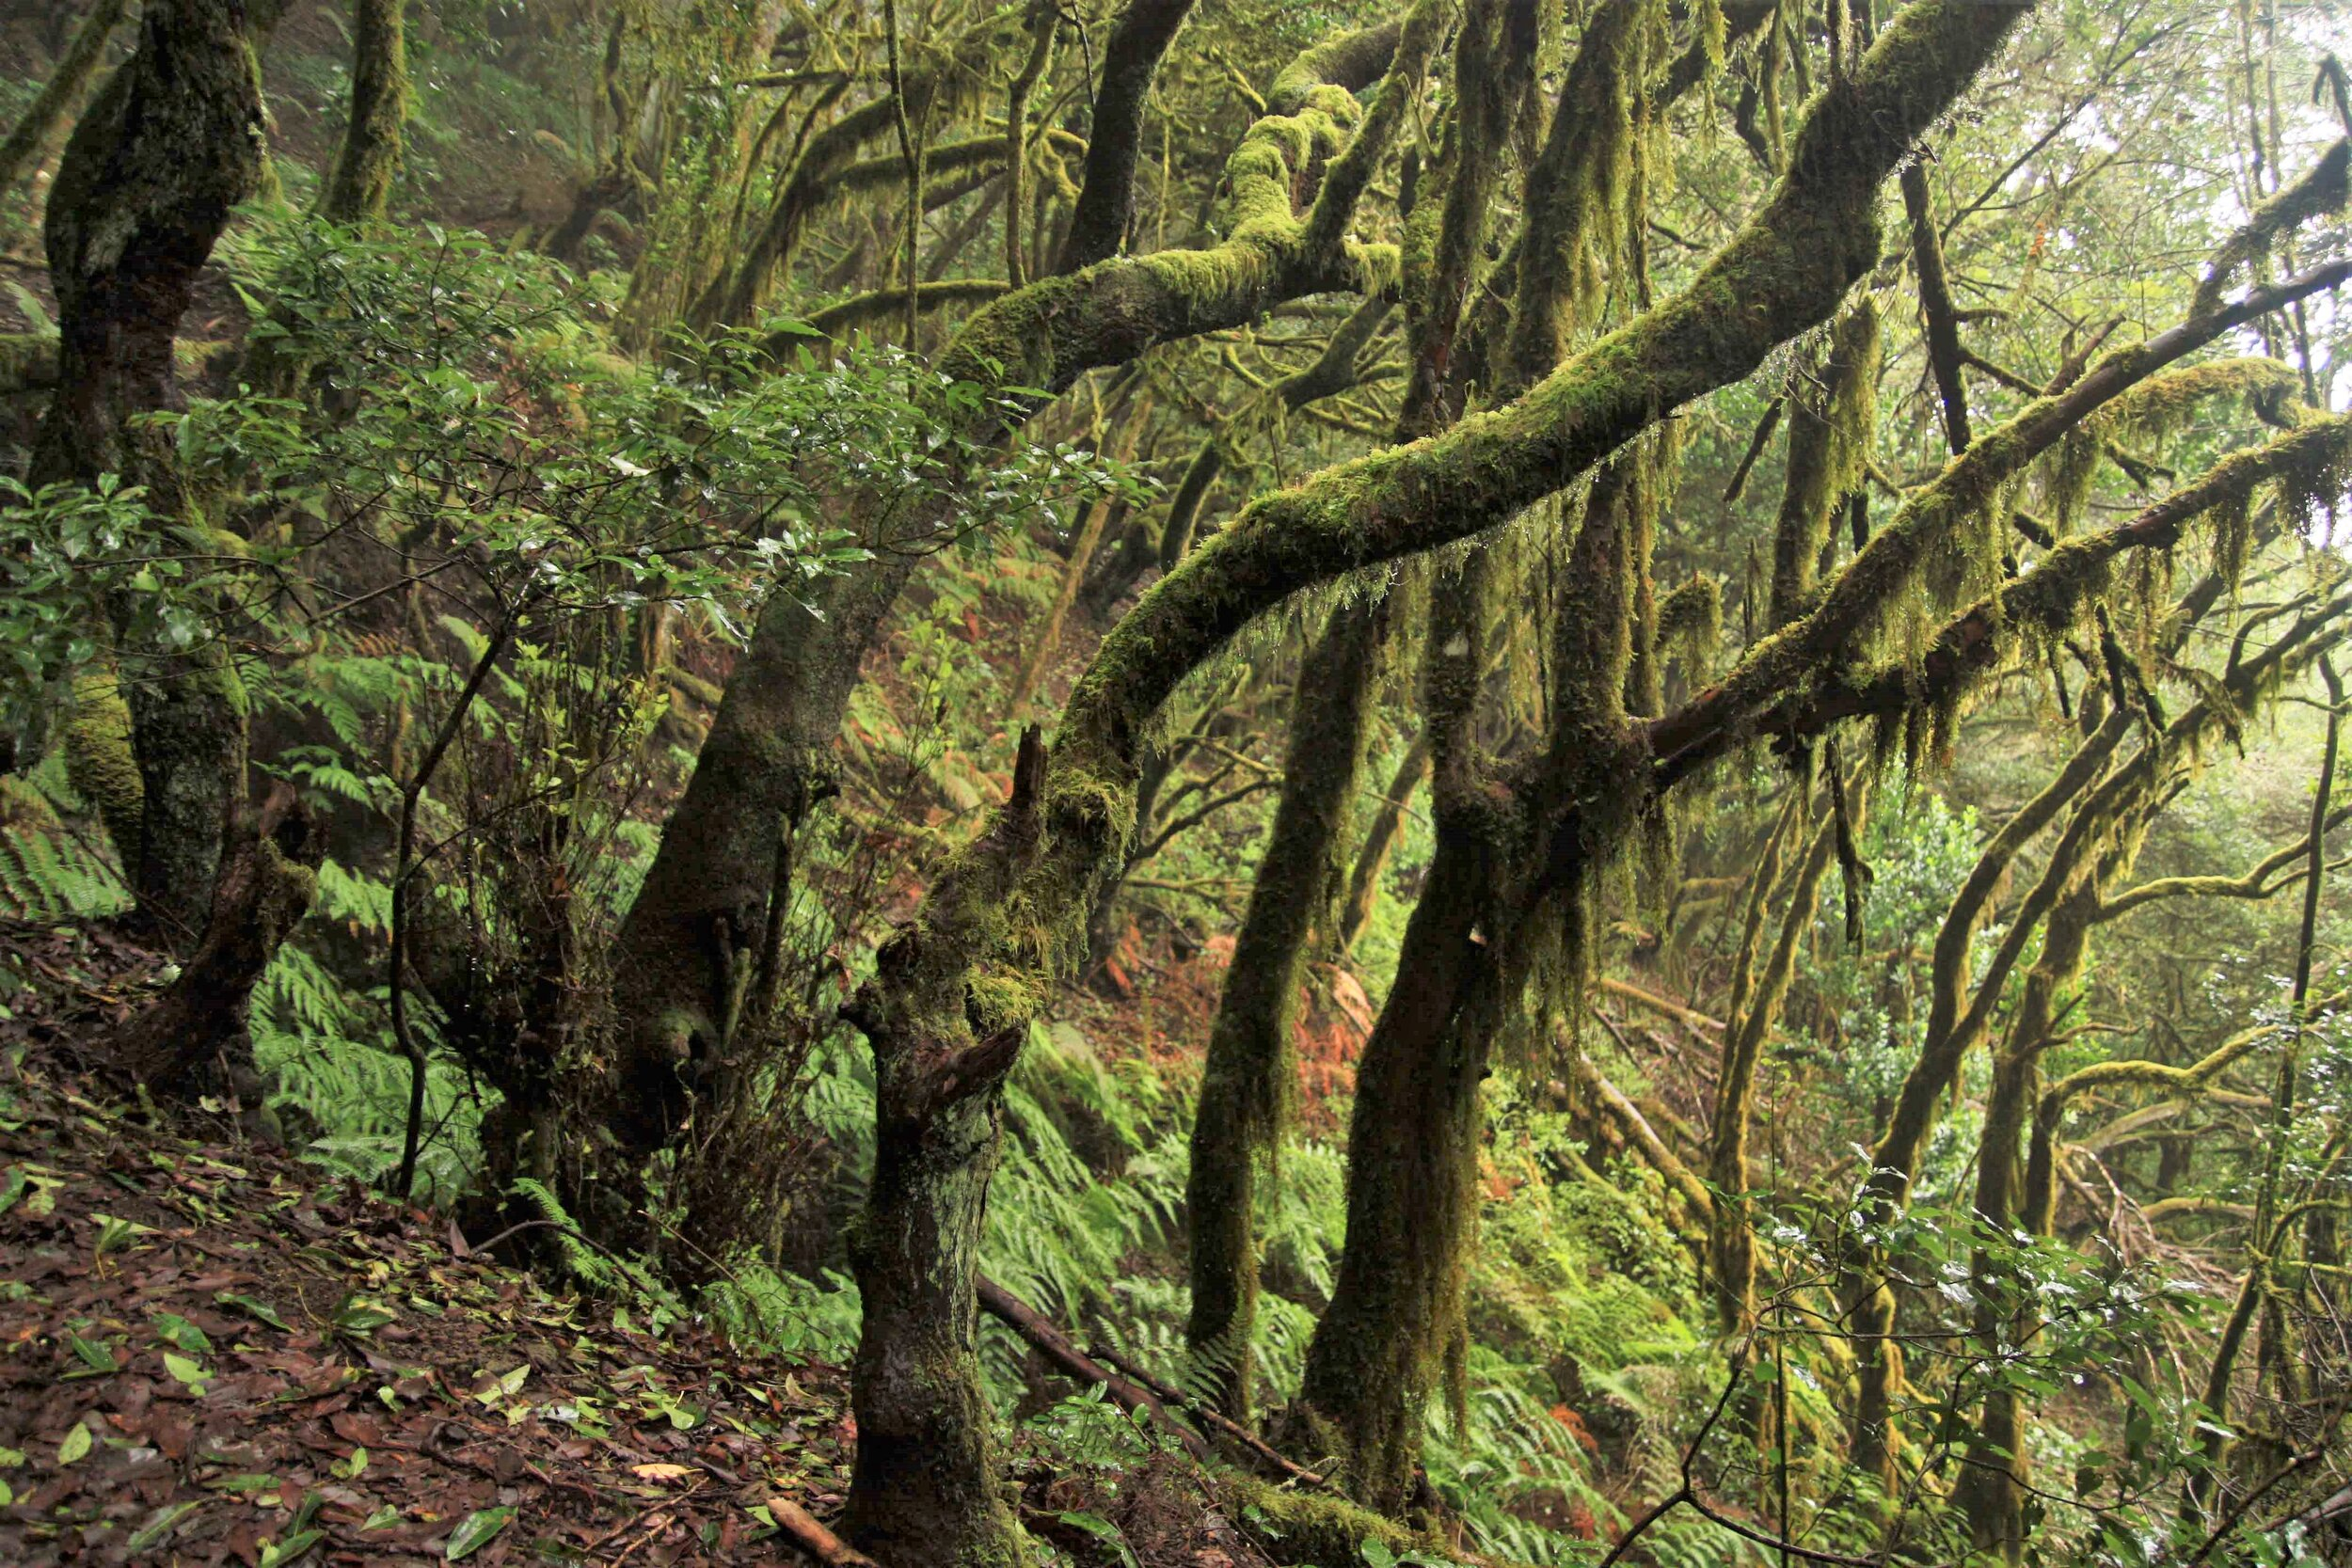 Rare and endangered  laurisilva  (temperate cloud forest) in the La Gomera highlands.